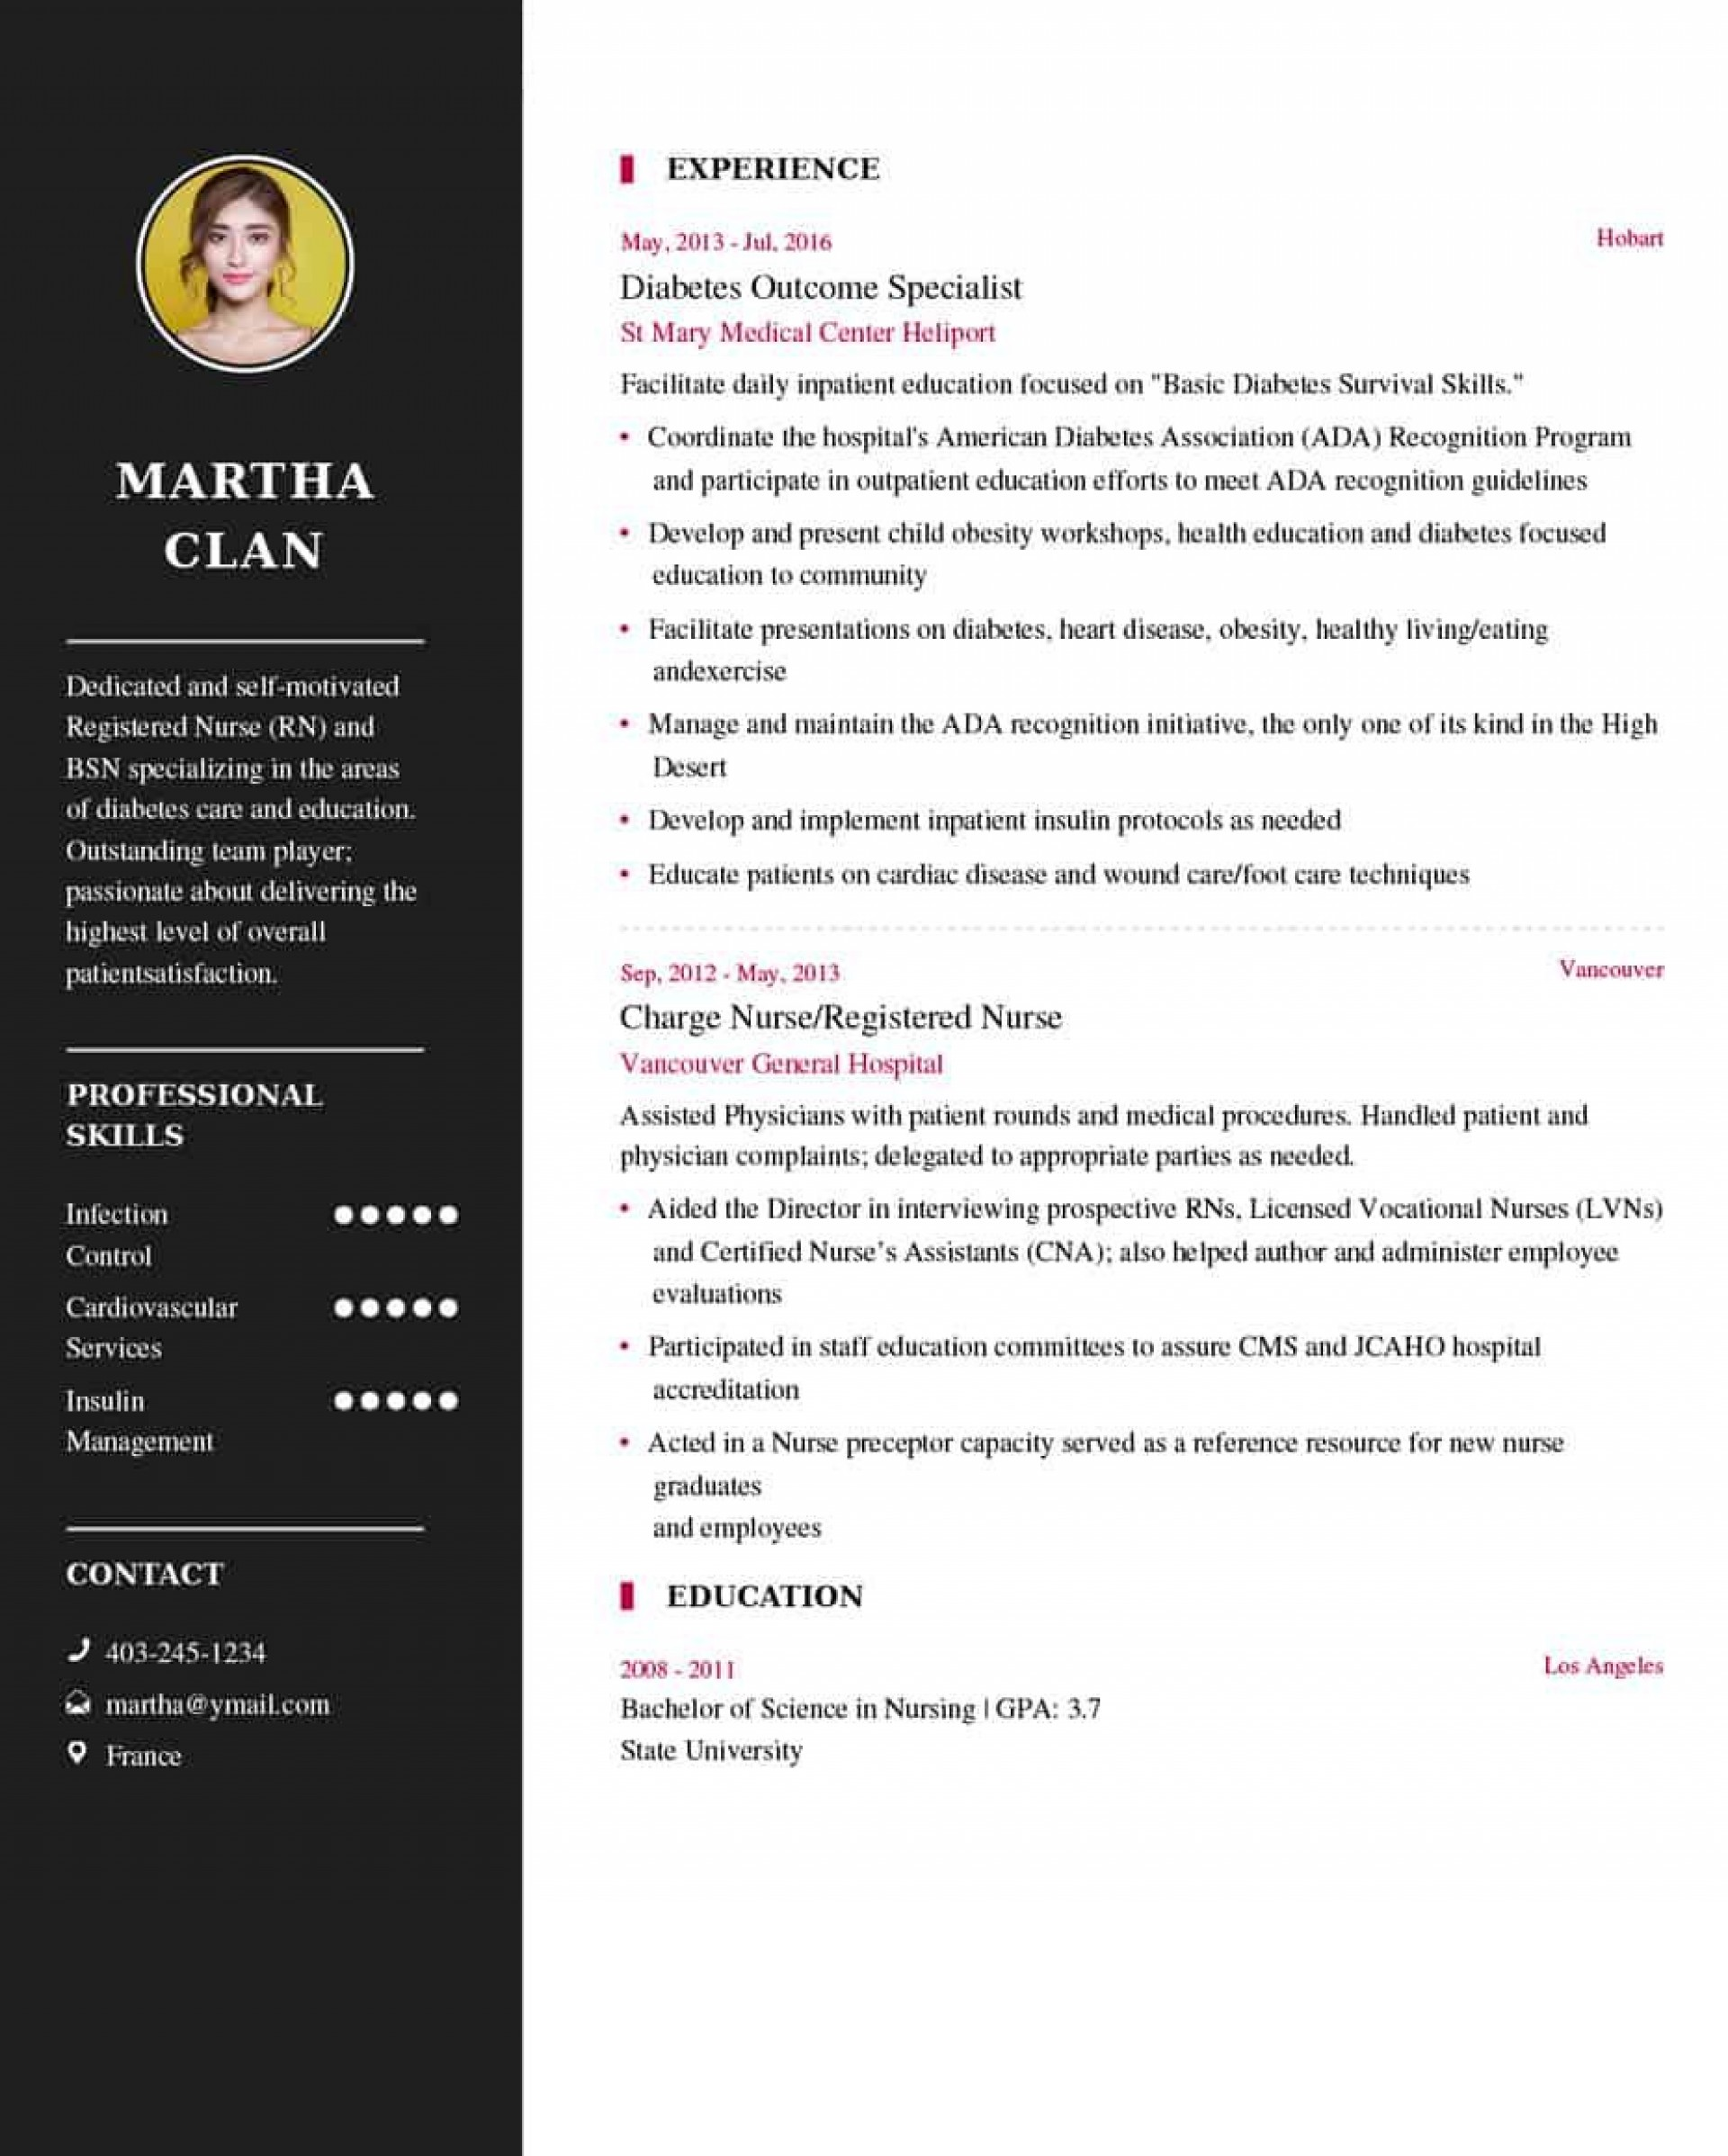 003 Magnificent Resume Template For Nurse Inspiration  Sample Nursing Assistant With No Experience Rn' Free1920